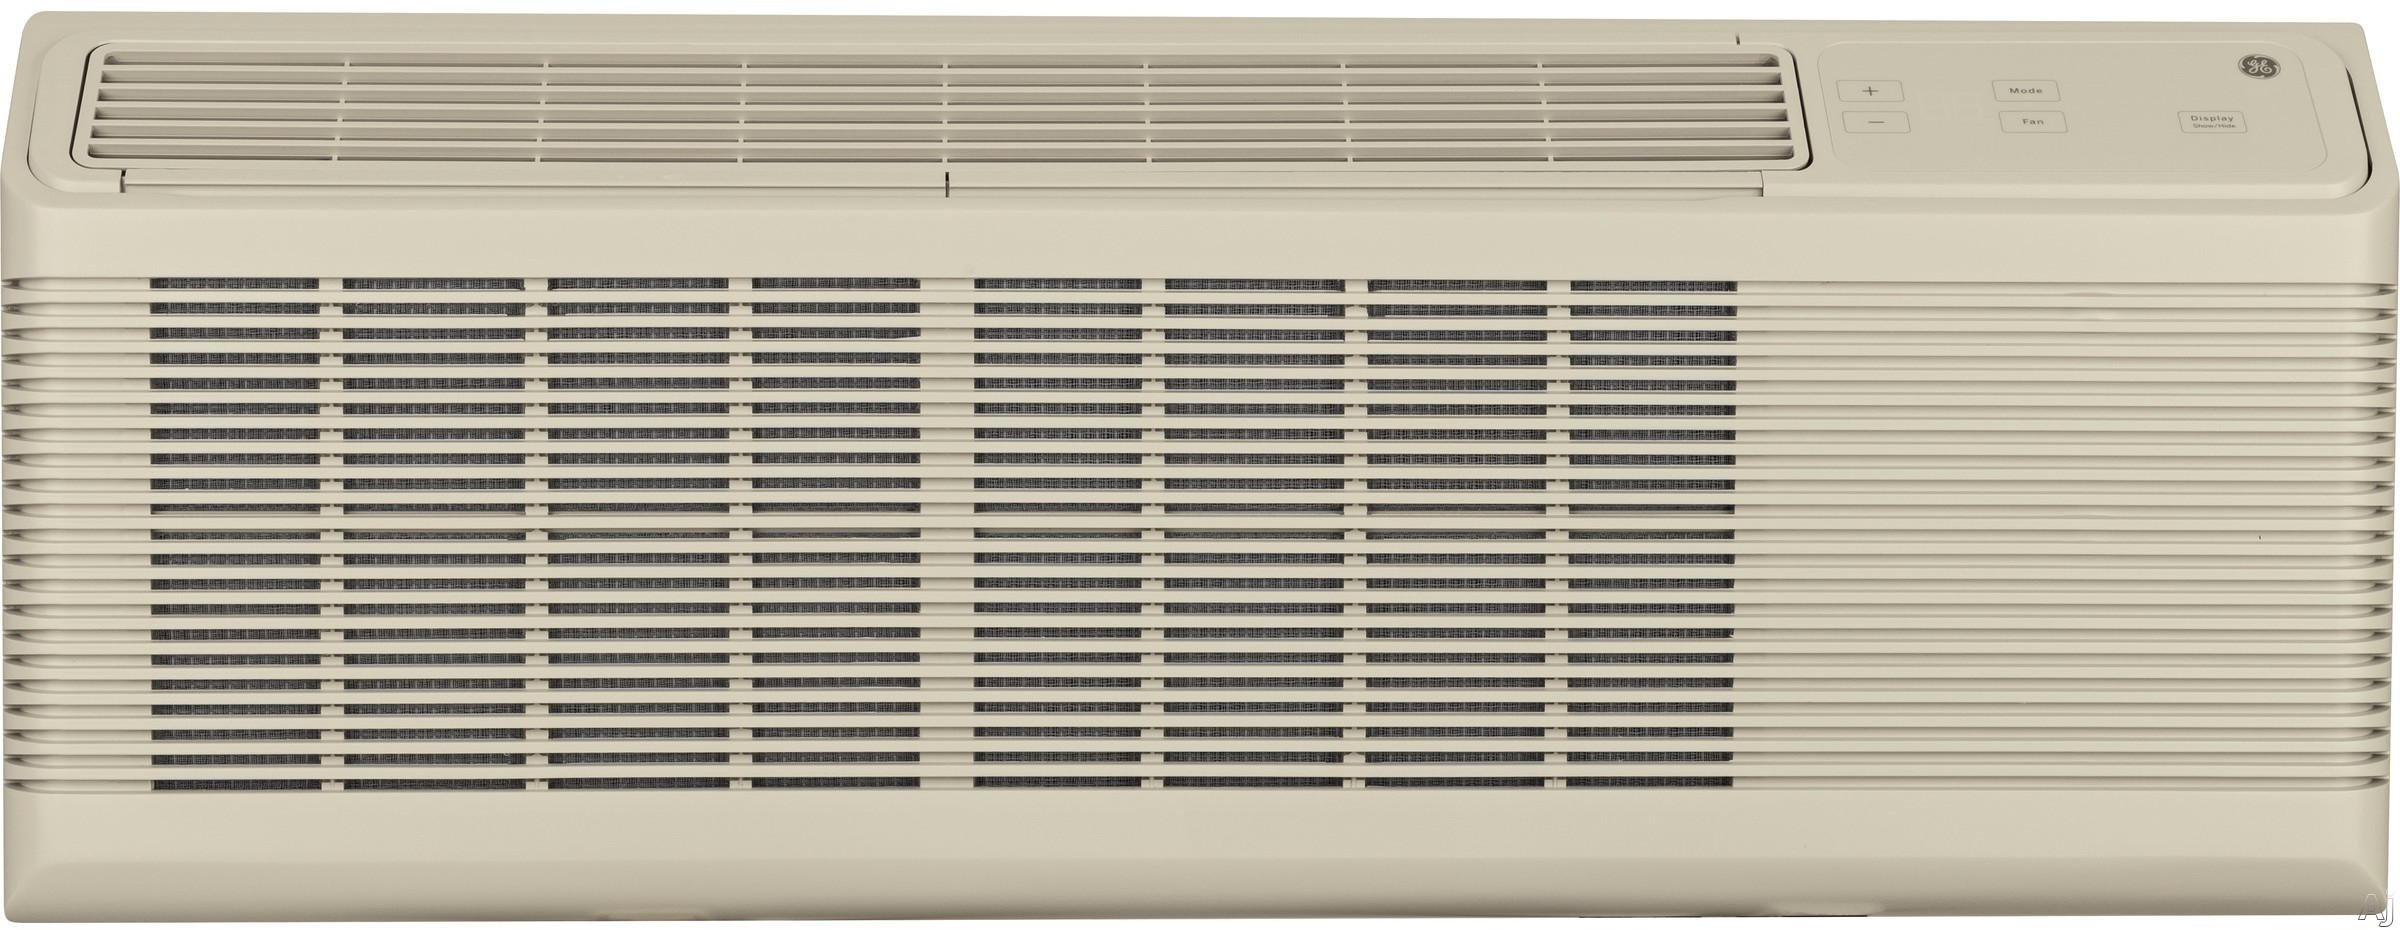 GE Zoneline AZ45E09EAC 9,500 BTU Packaged Terminal Air Conditioner with Electric Heat, Corrosion Protection, 11.6 EER, 2.7 Pints Per Hour Dehumidification, R410A Refrigerant and 265 Volt AZ45E09EAC